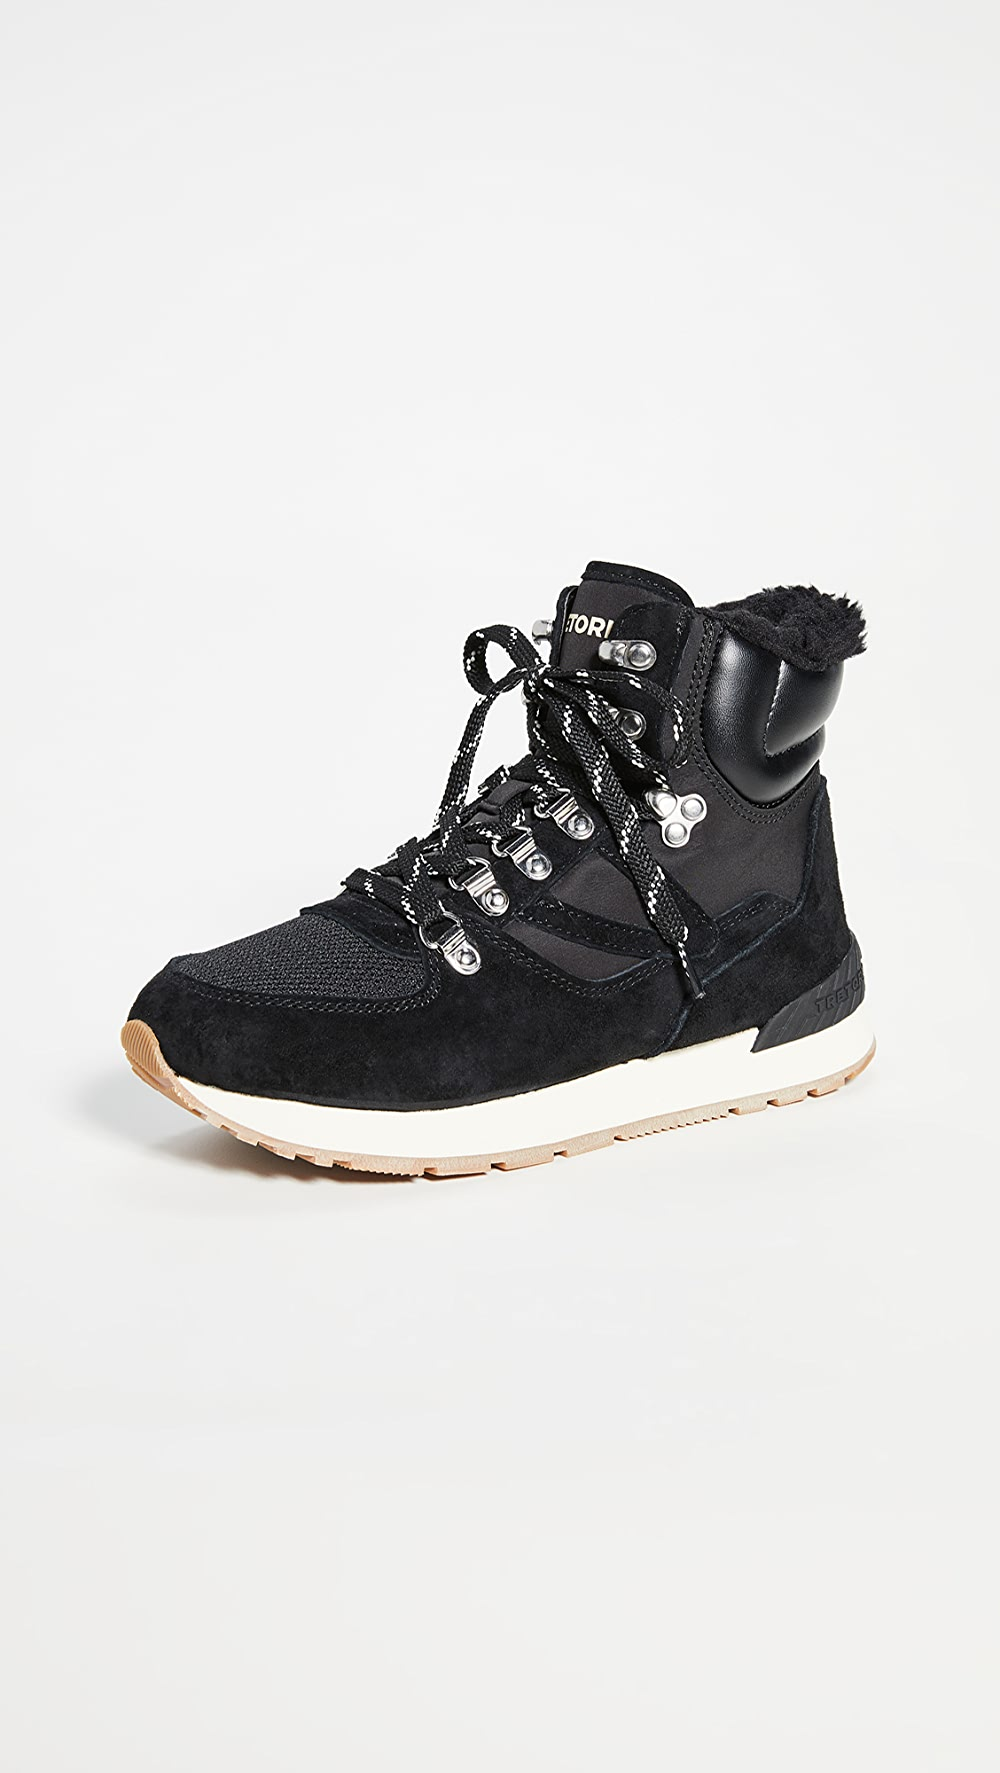 Frugal Tretorn - Lily 3 Hiker Sneakers Distinctive For Its Traditional Properties